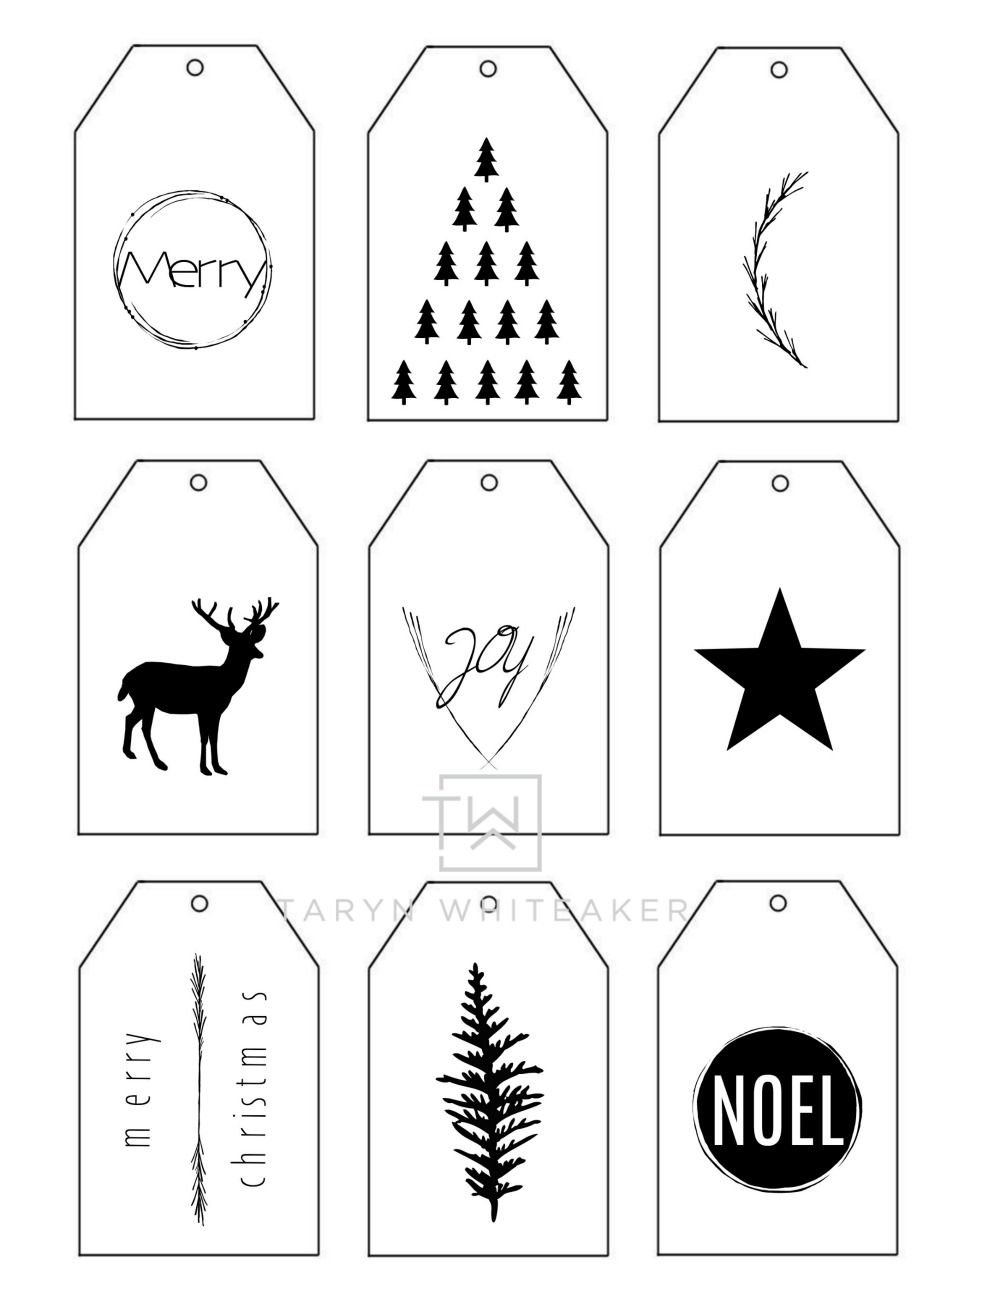 photo regarding Printable Christmas Tags Black and White called Printable Xmas Reward Tags - Taryn Whiteaker